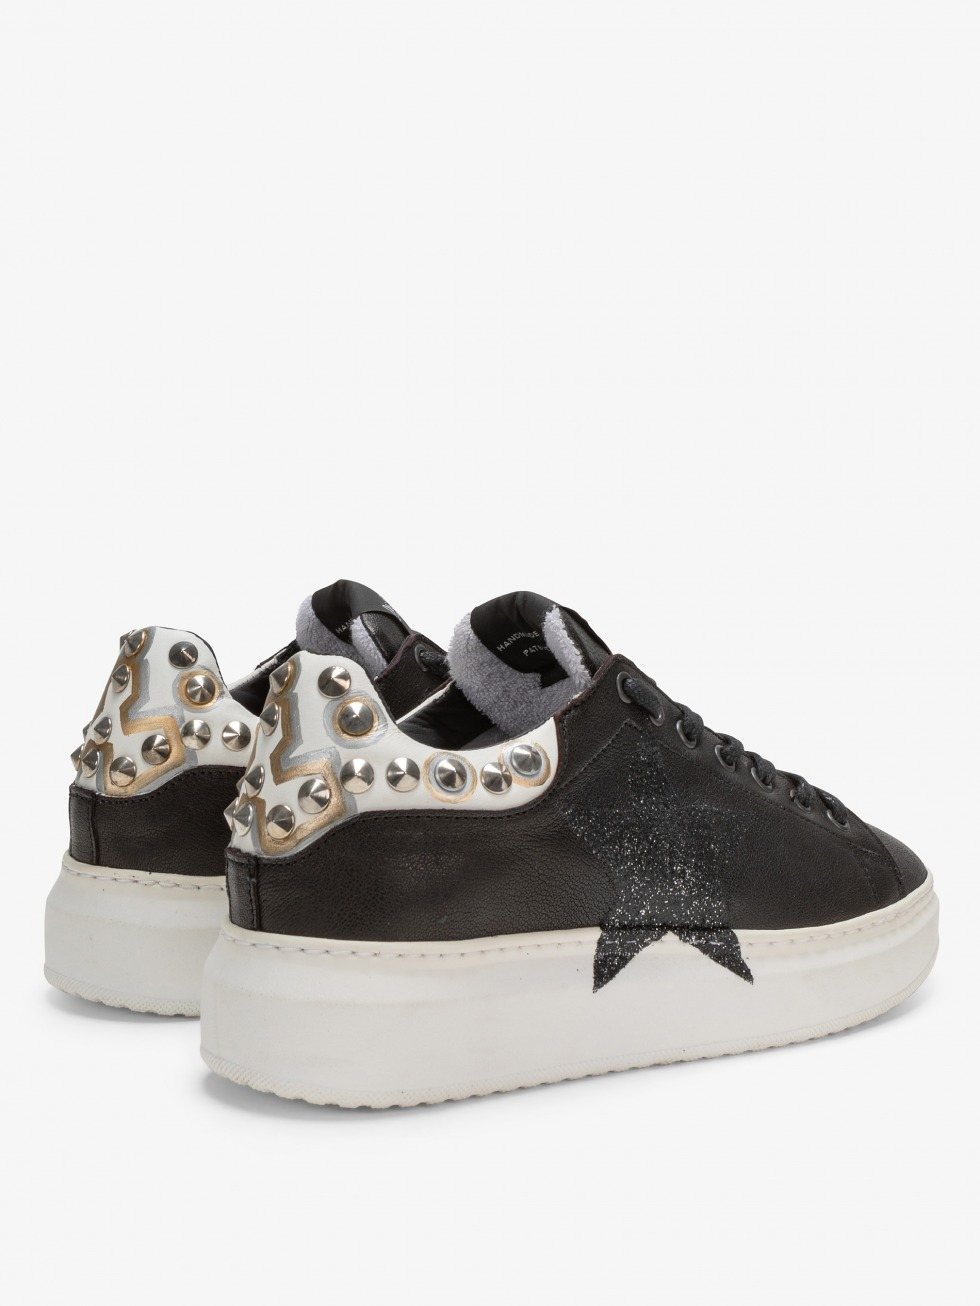 sneakers-nere-angel-black-rock-totem-stella (2)